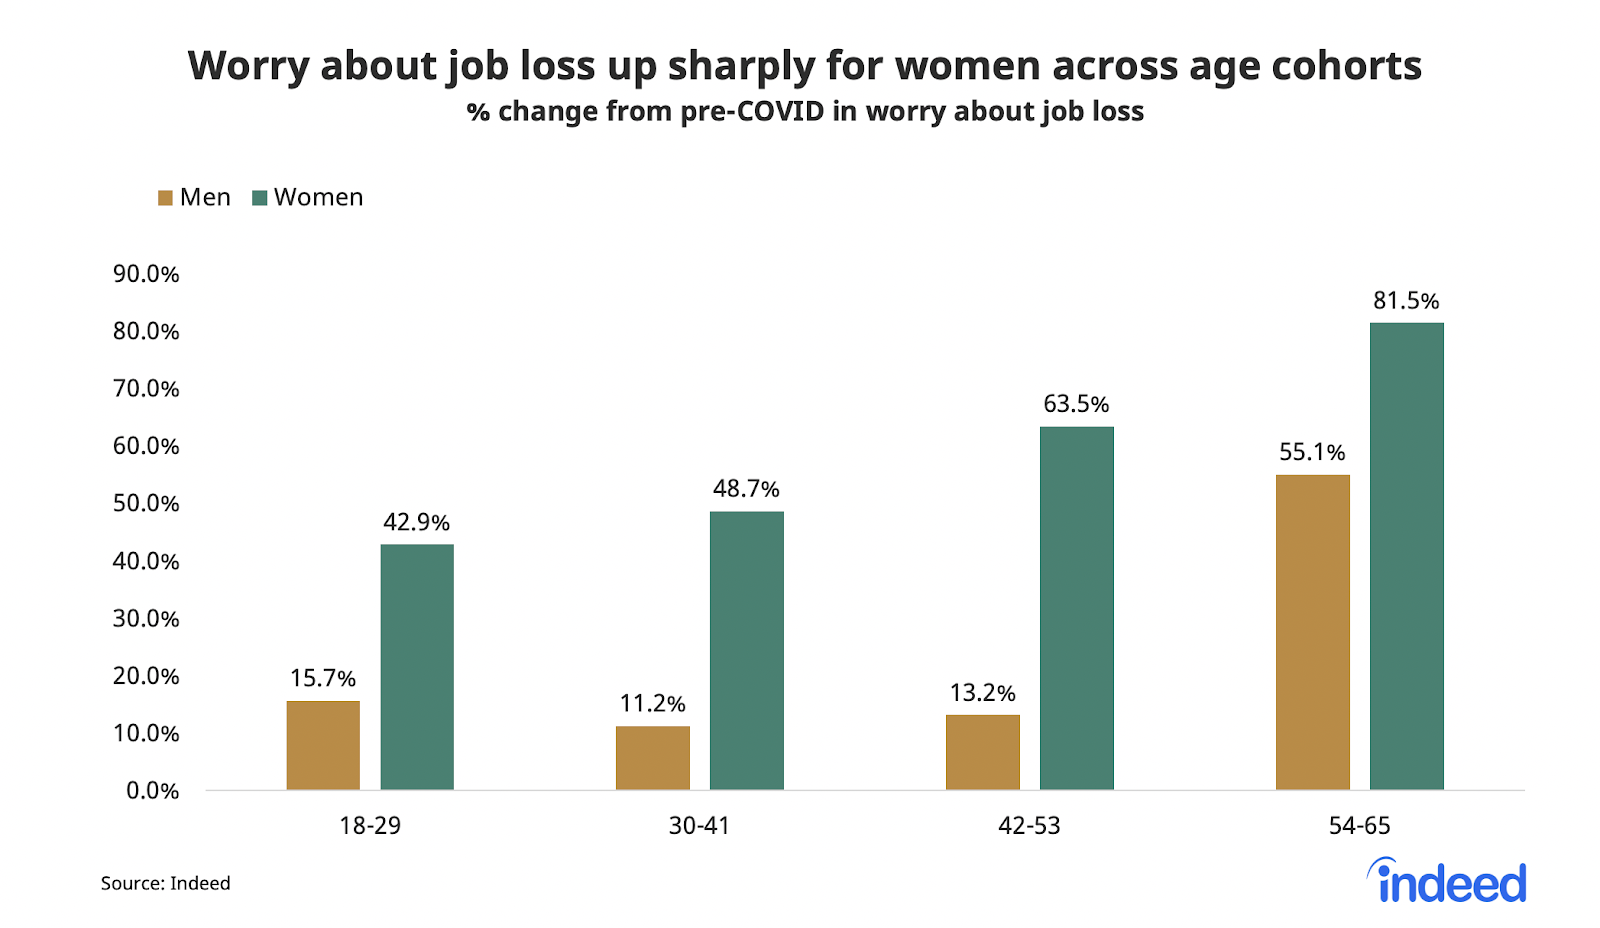 Bar graph surveying men and women worries about job loss up sharply for women across all age cohorts